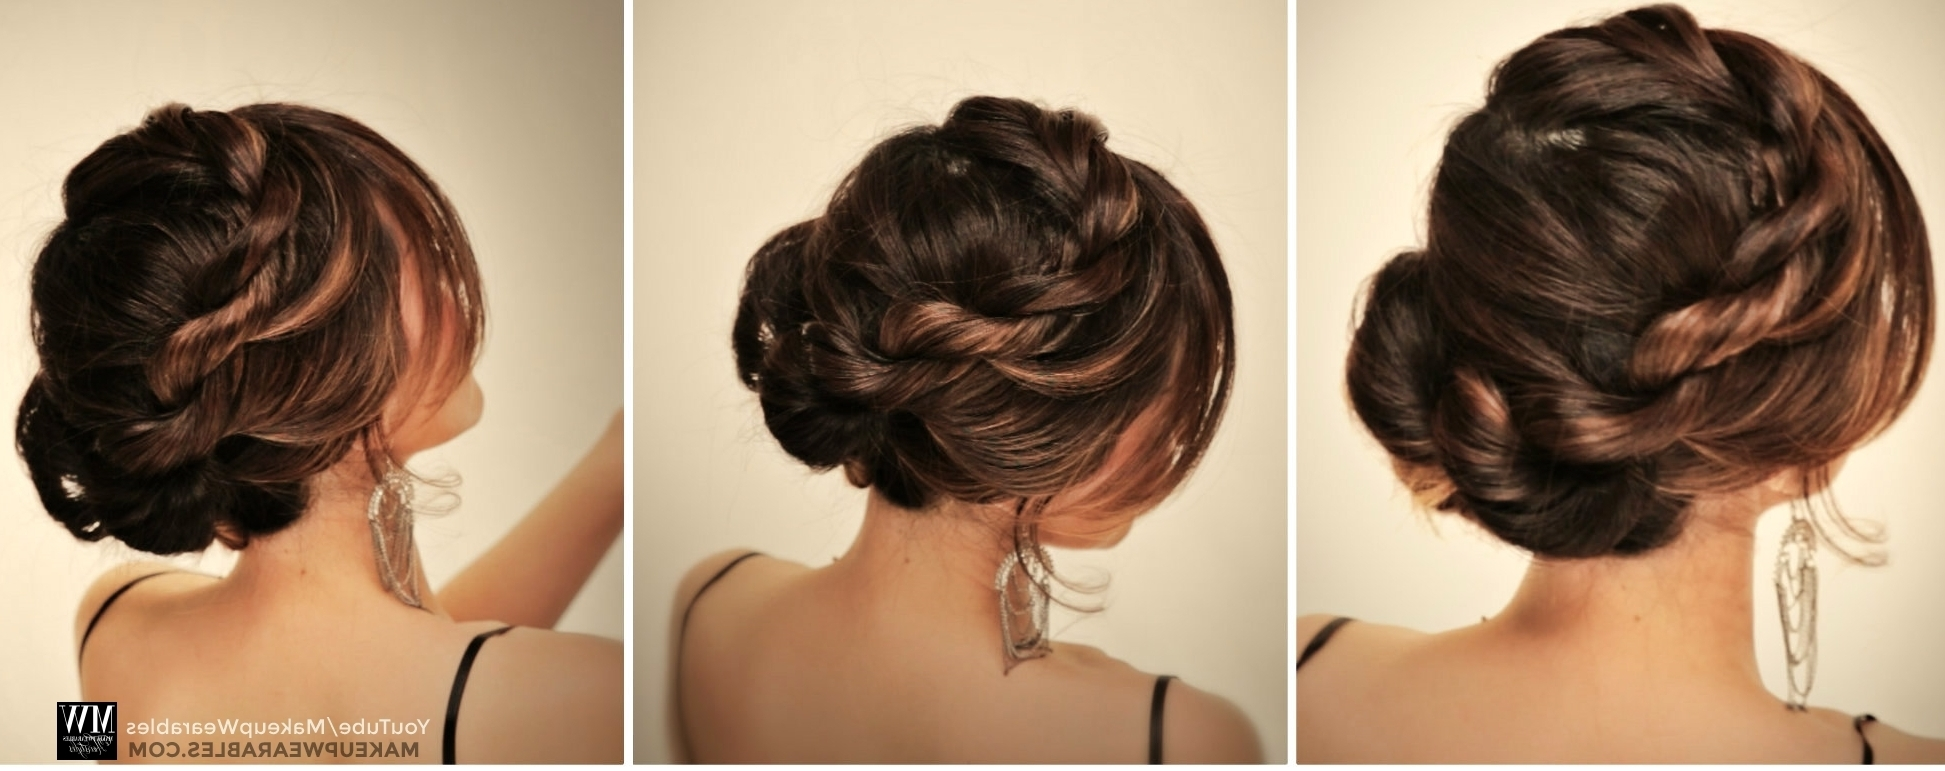 How To: 5 Amazingly Cute + Easy Hairstyles With A Simple Twist In Braid Updo Hairstyles For Long Hair (View 11 of 15)